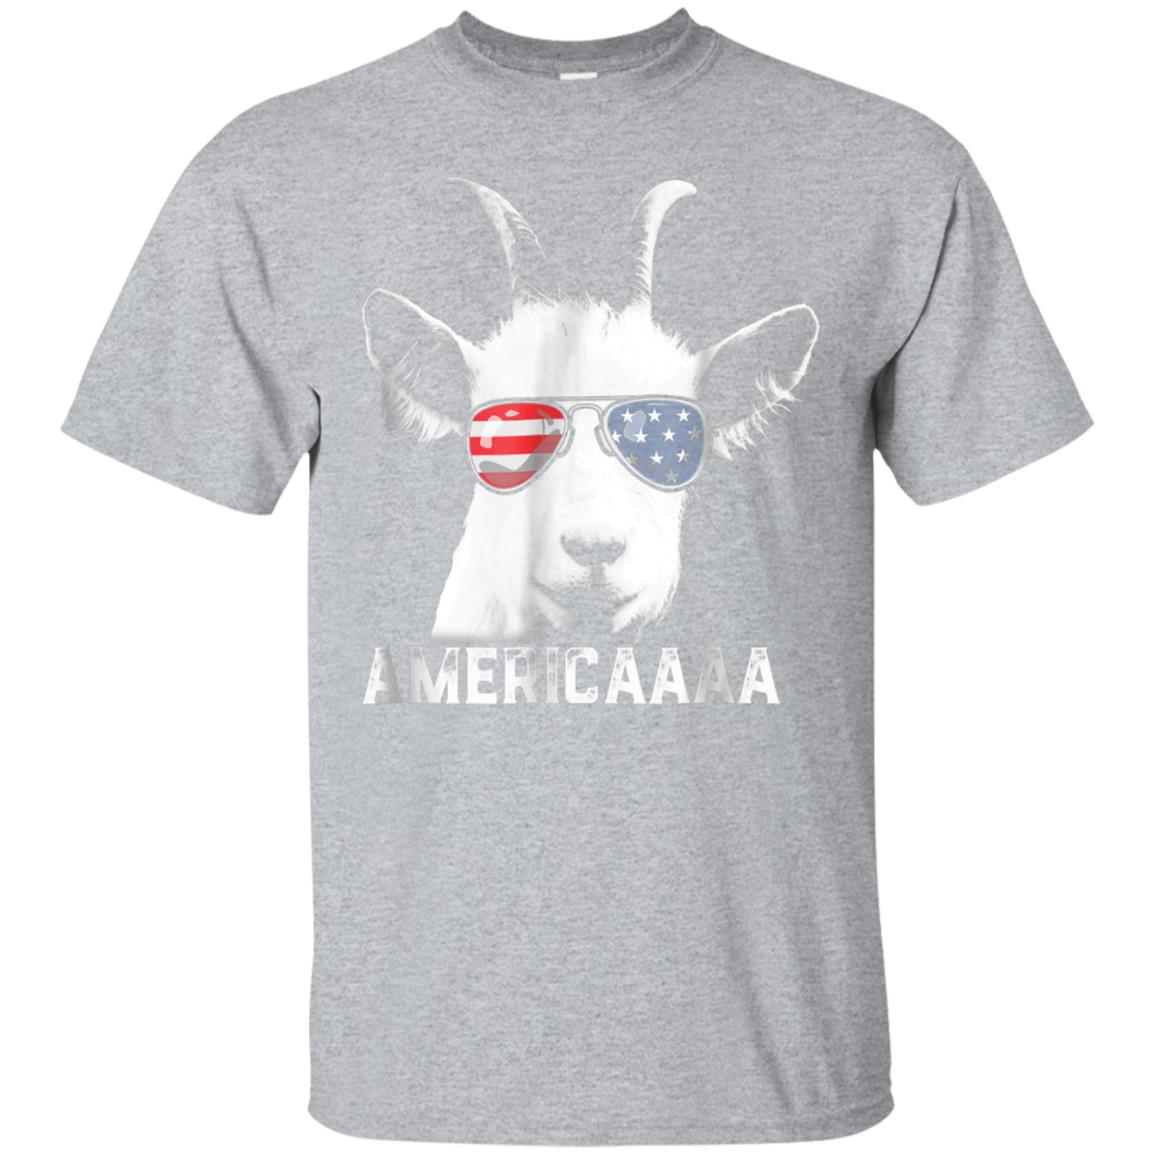 Patriotic Goat 4th of July T shirt Boys Funny Goat Americaaa 99promocode